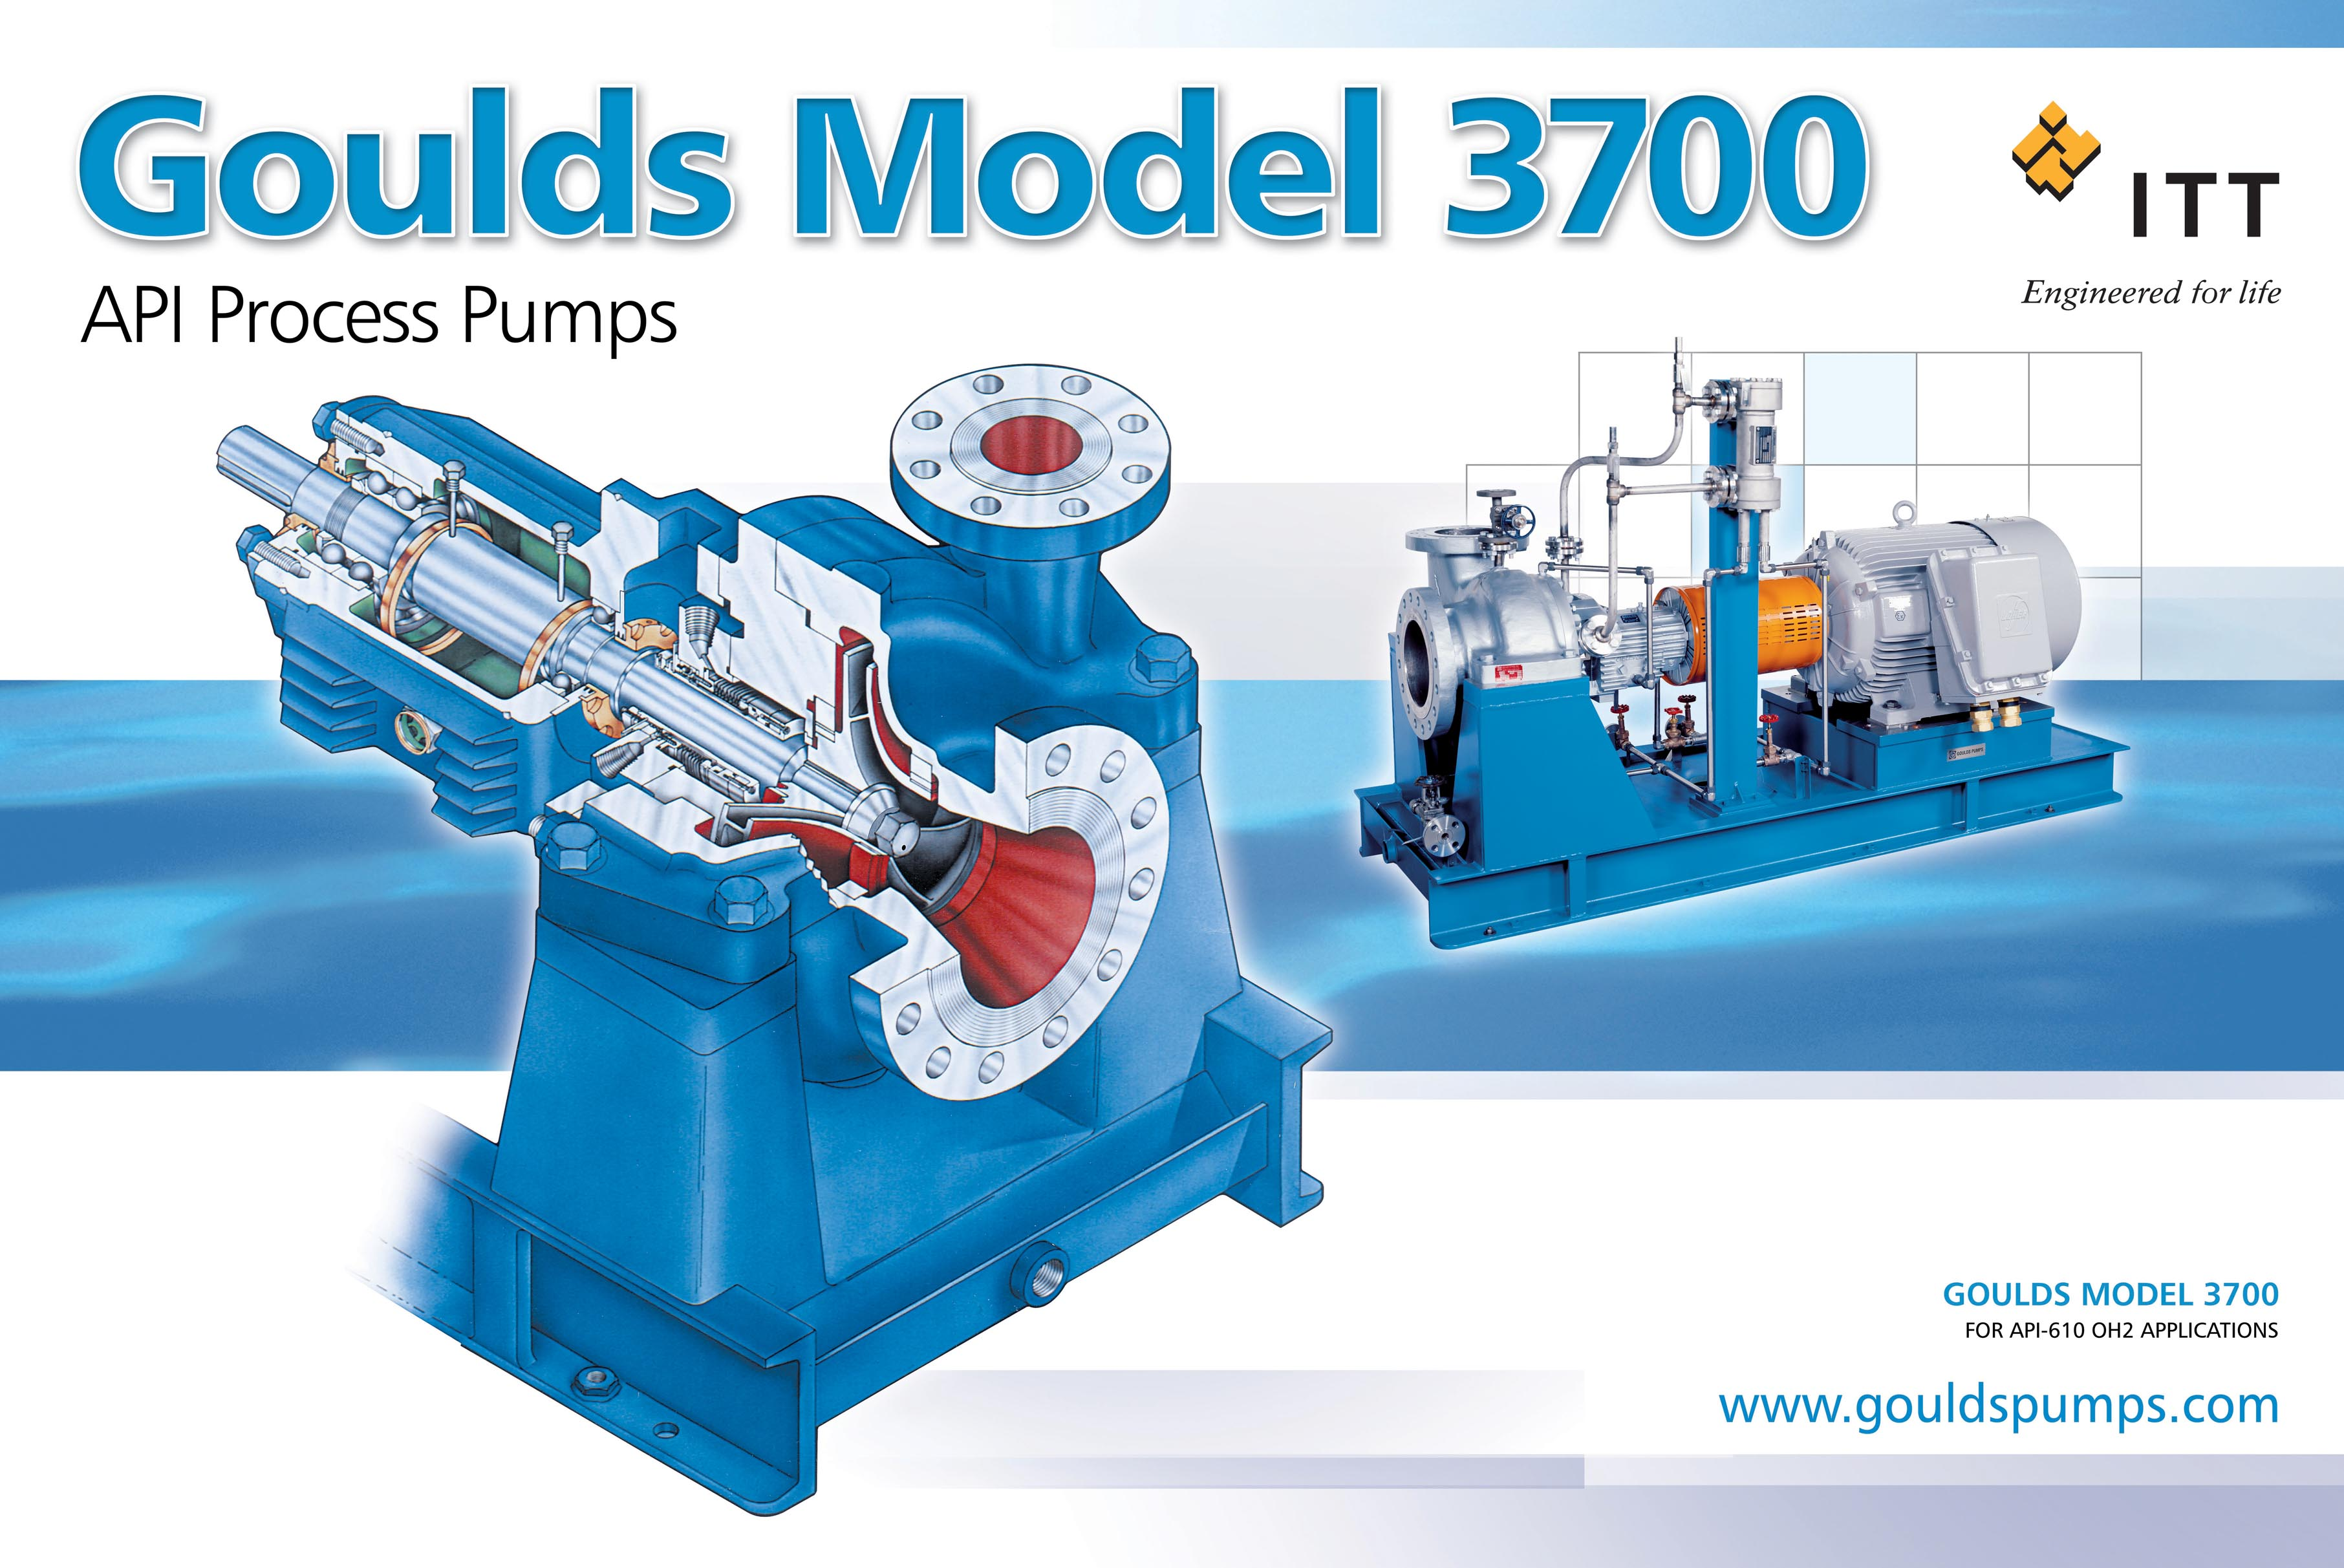 multiple picture frame ideas - 3700 Single Stage Overhung Process Pump